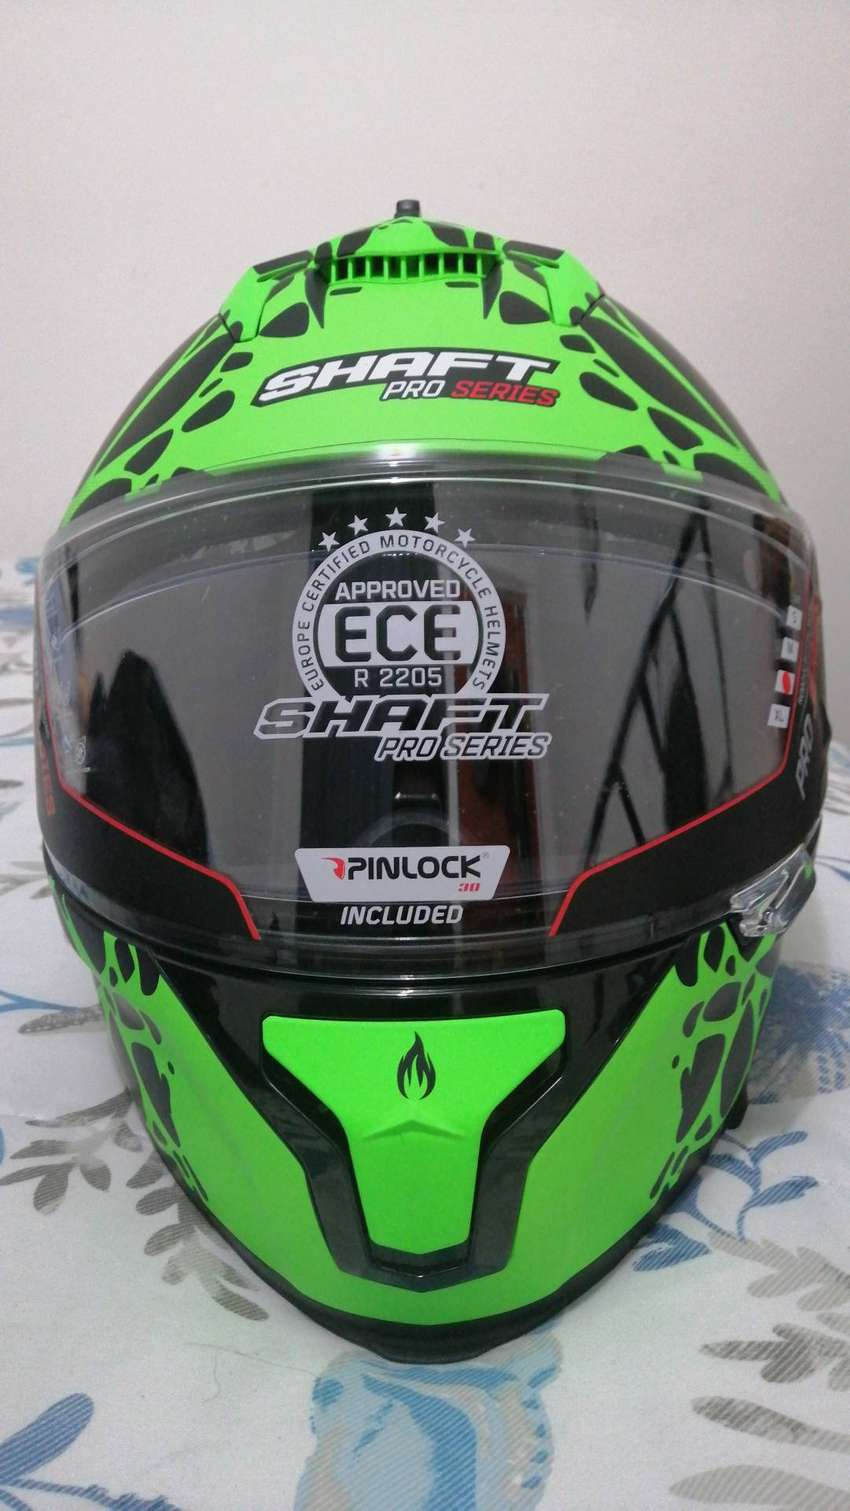 Casco marca shaft, referencia pro series.